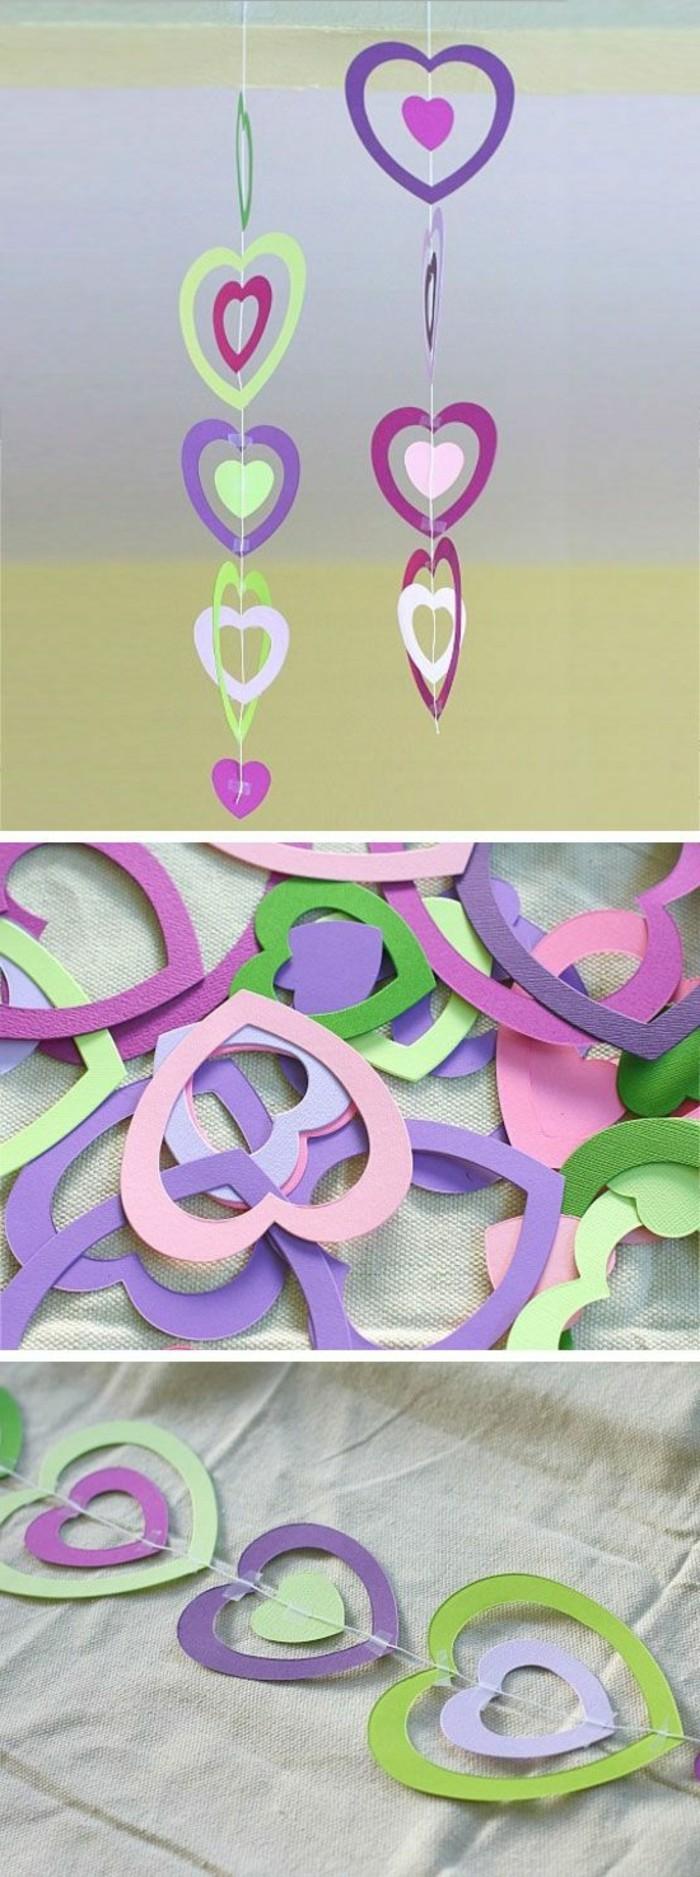 two garlands made from paper hearts, in different shades of pink, green and violet, attached together with white string and tape, close up of the garlands